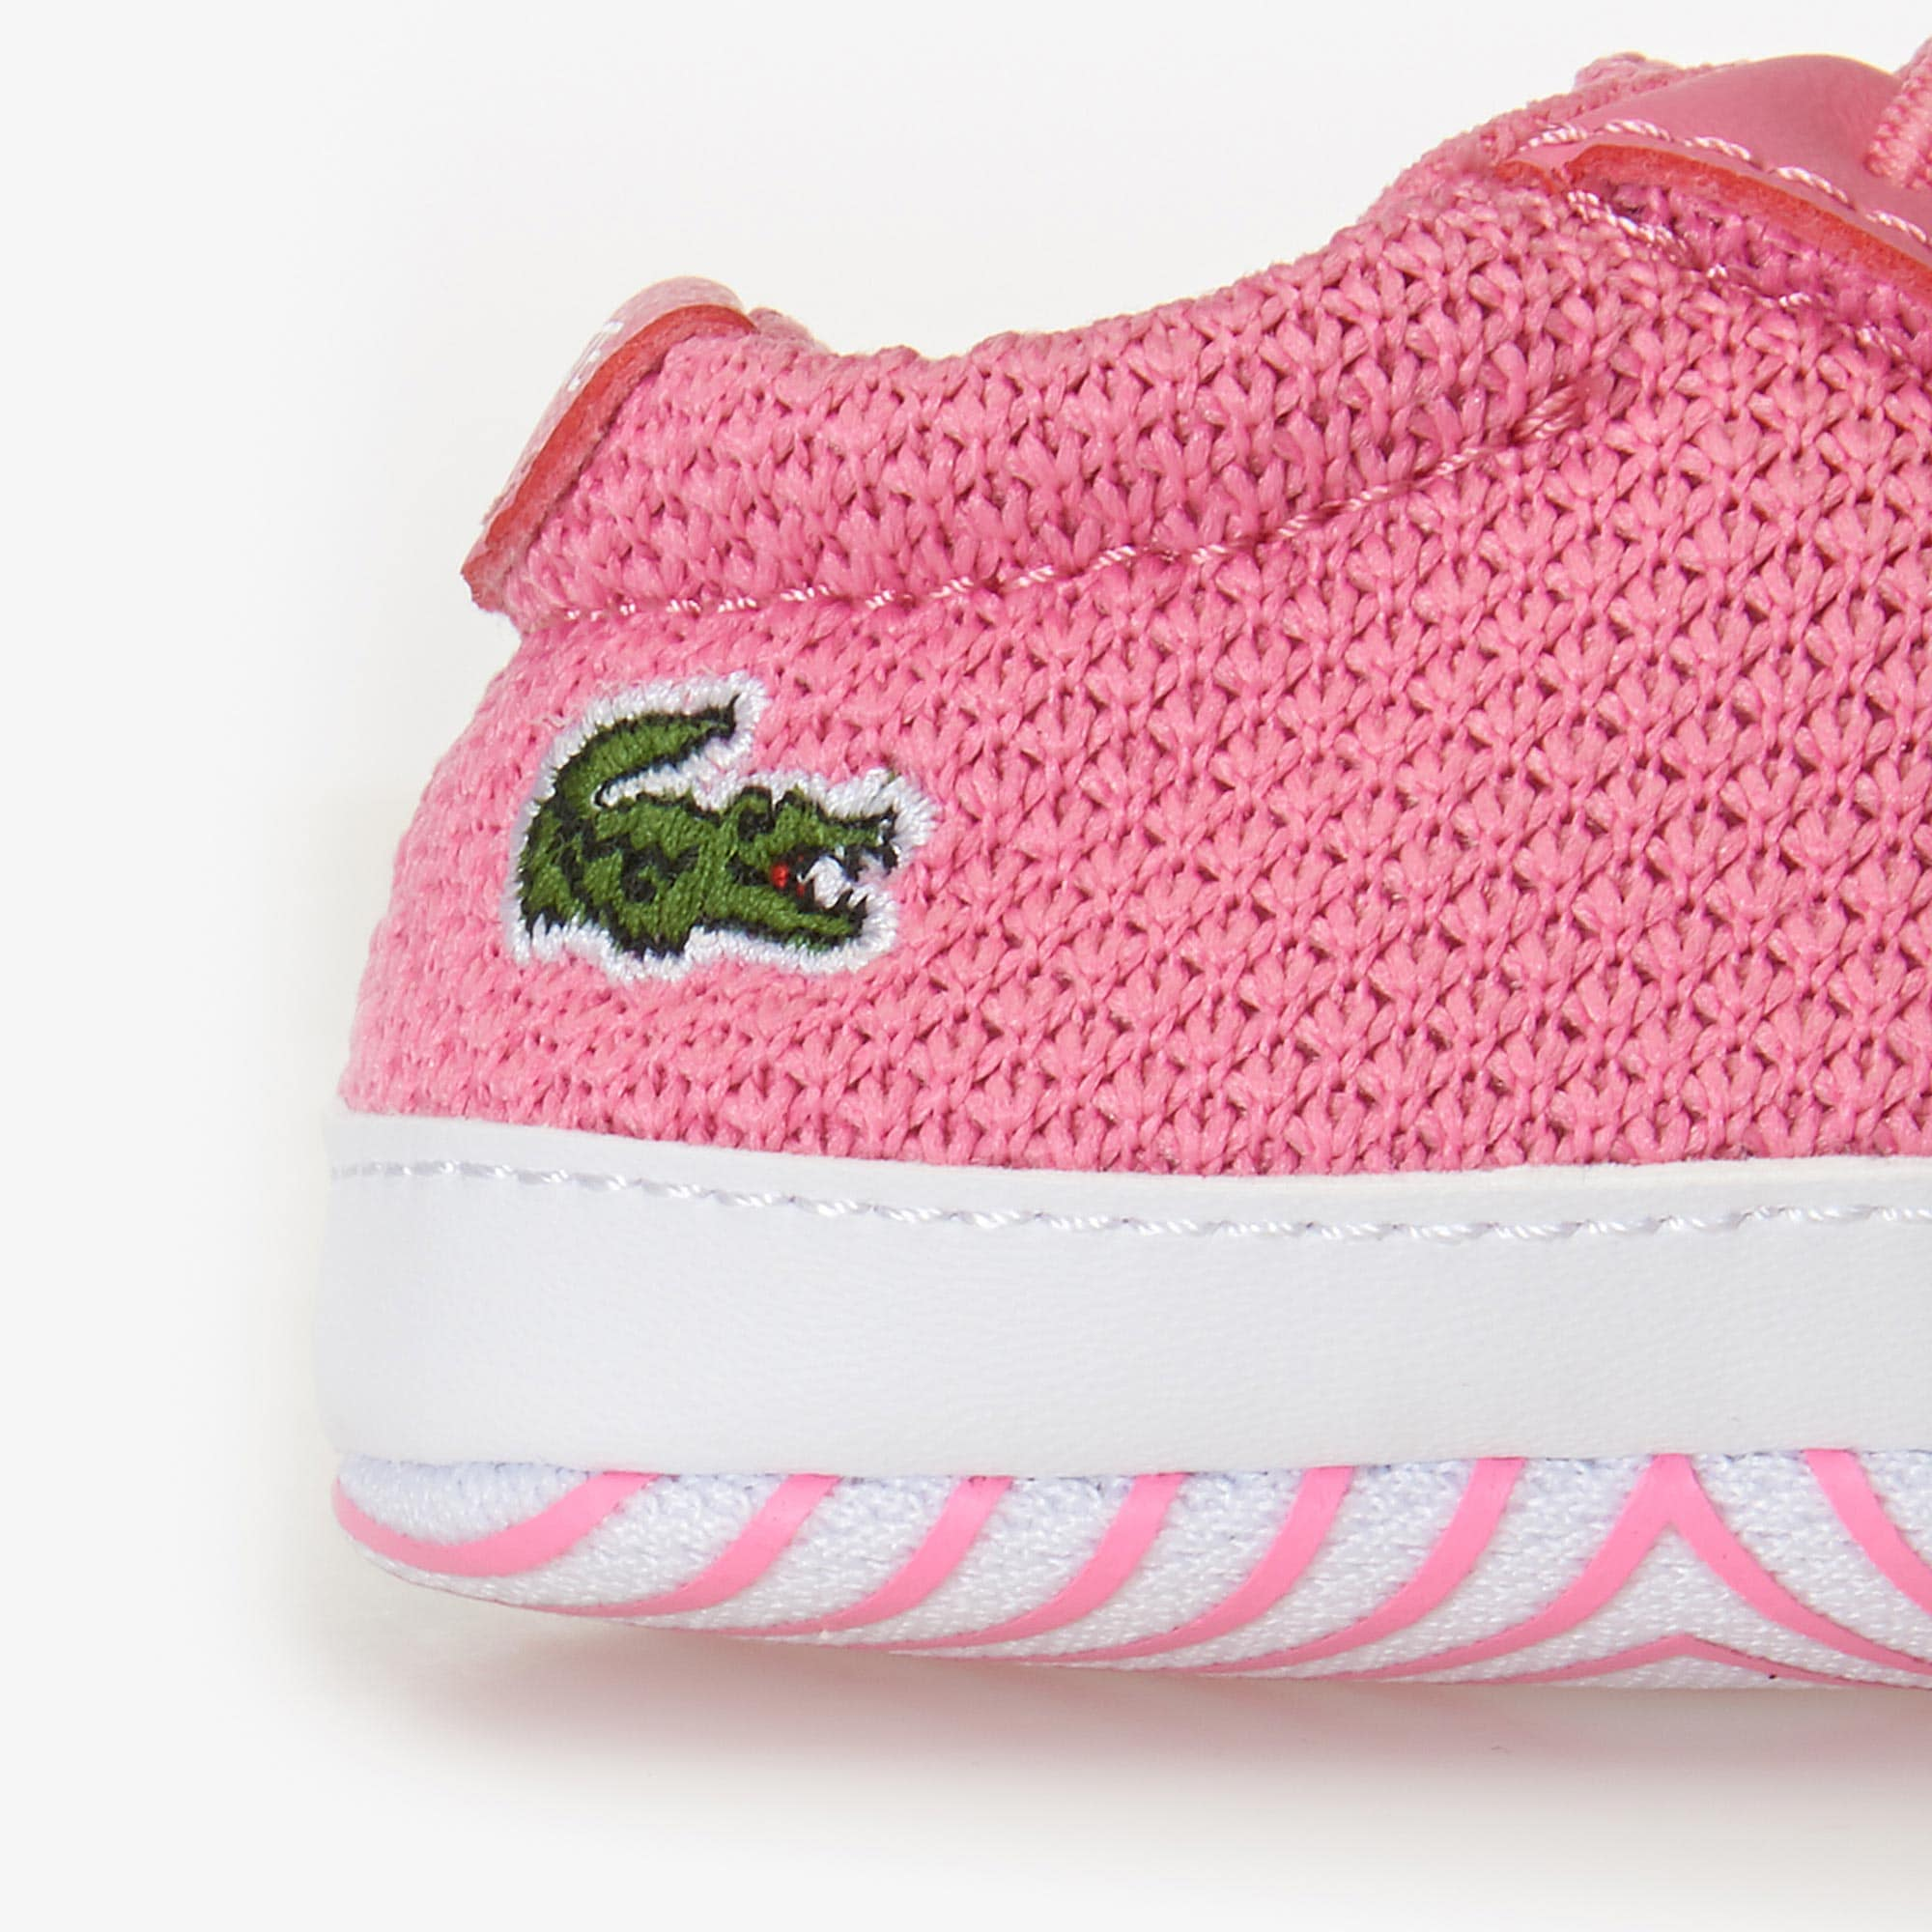 Babies' L.12.12 Crib Textile Sneakers